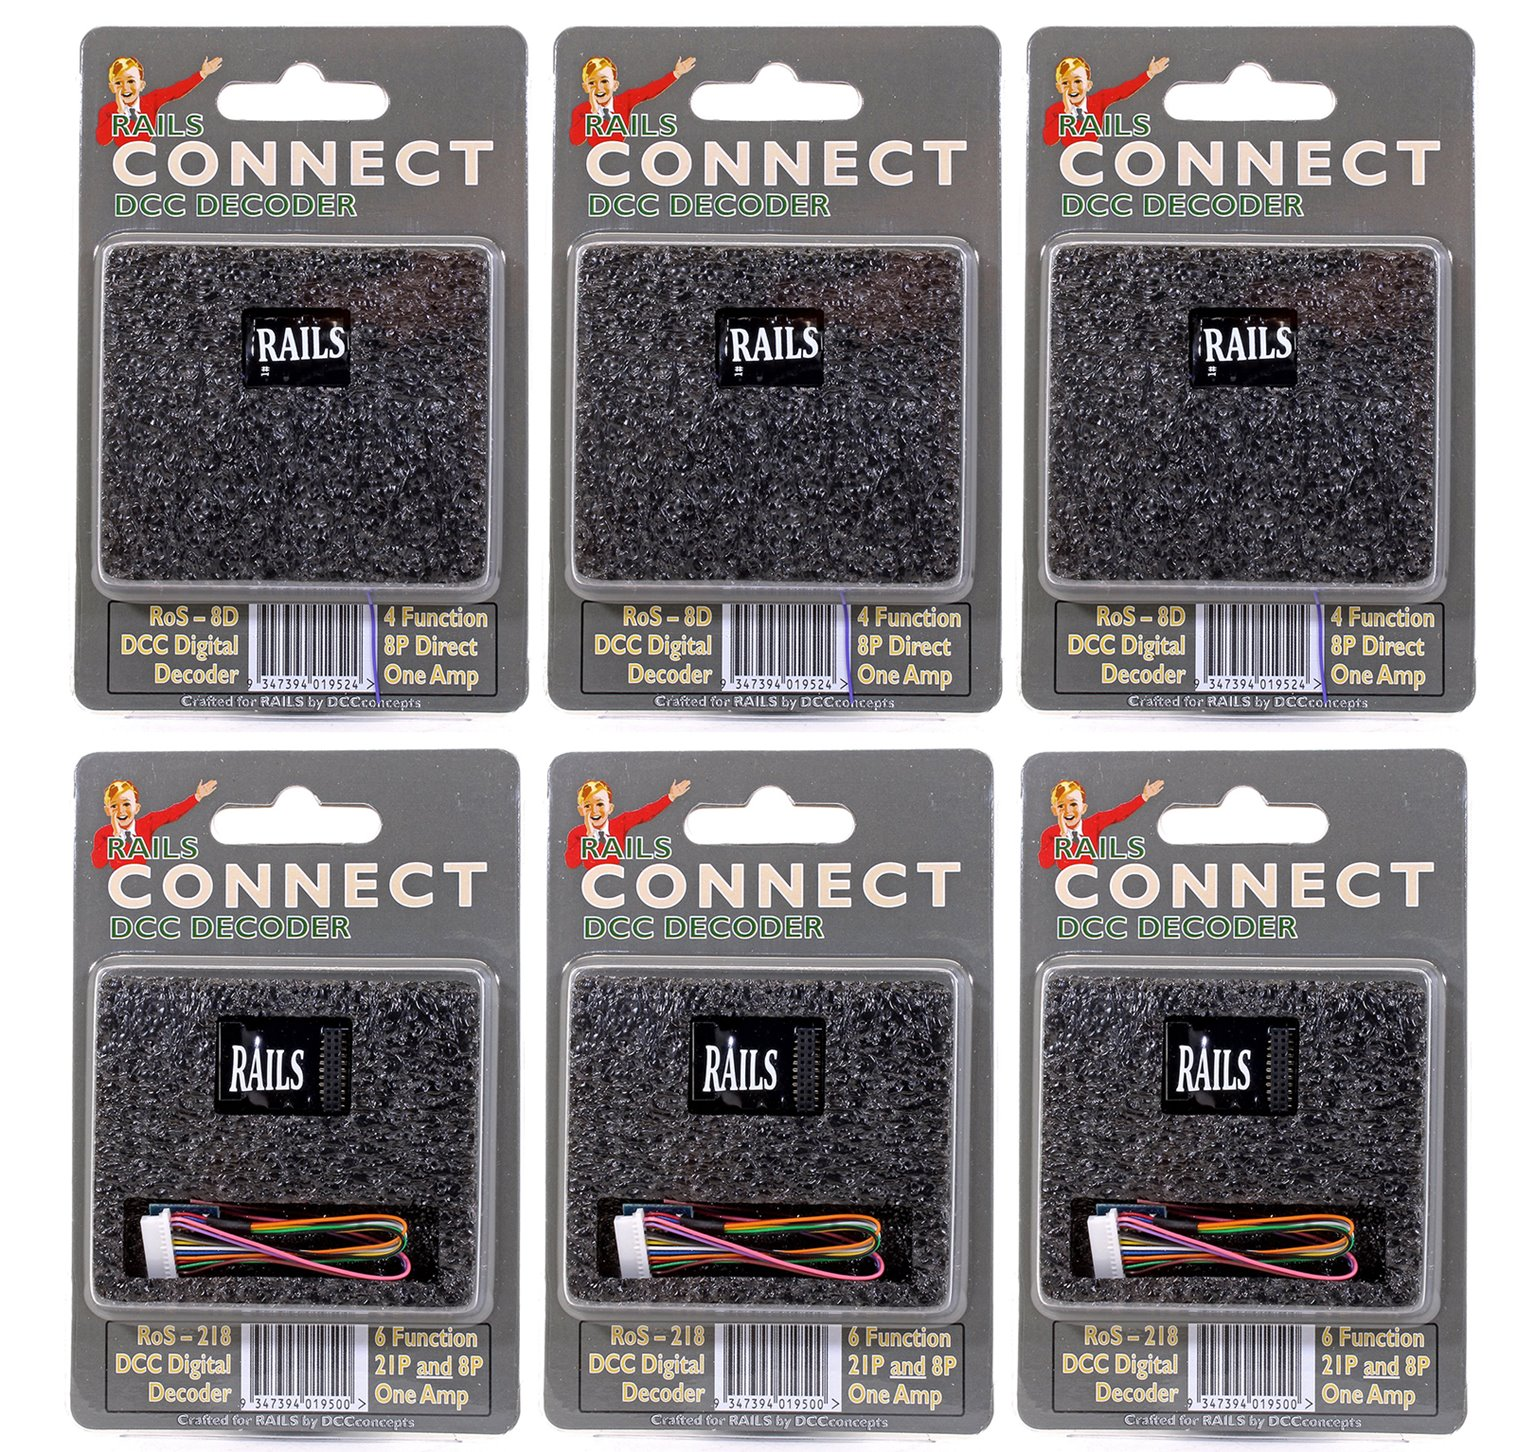 Pack of Six Rails Connect Decoders (3x 21 Pin & 3x 8 Pin)